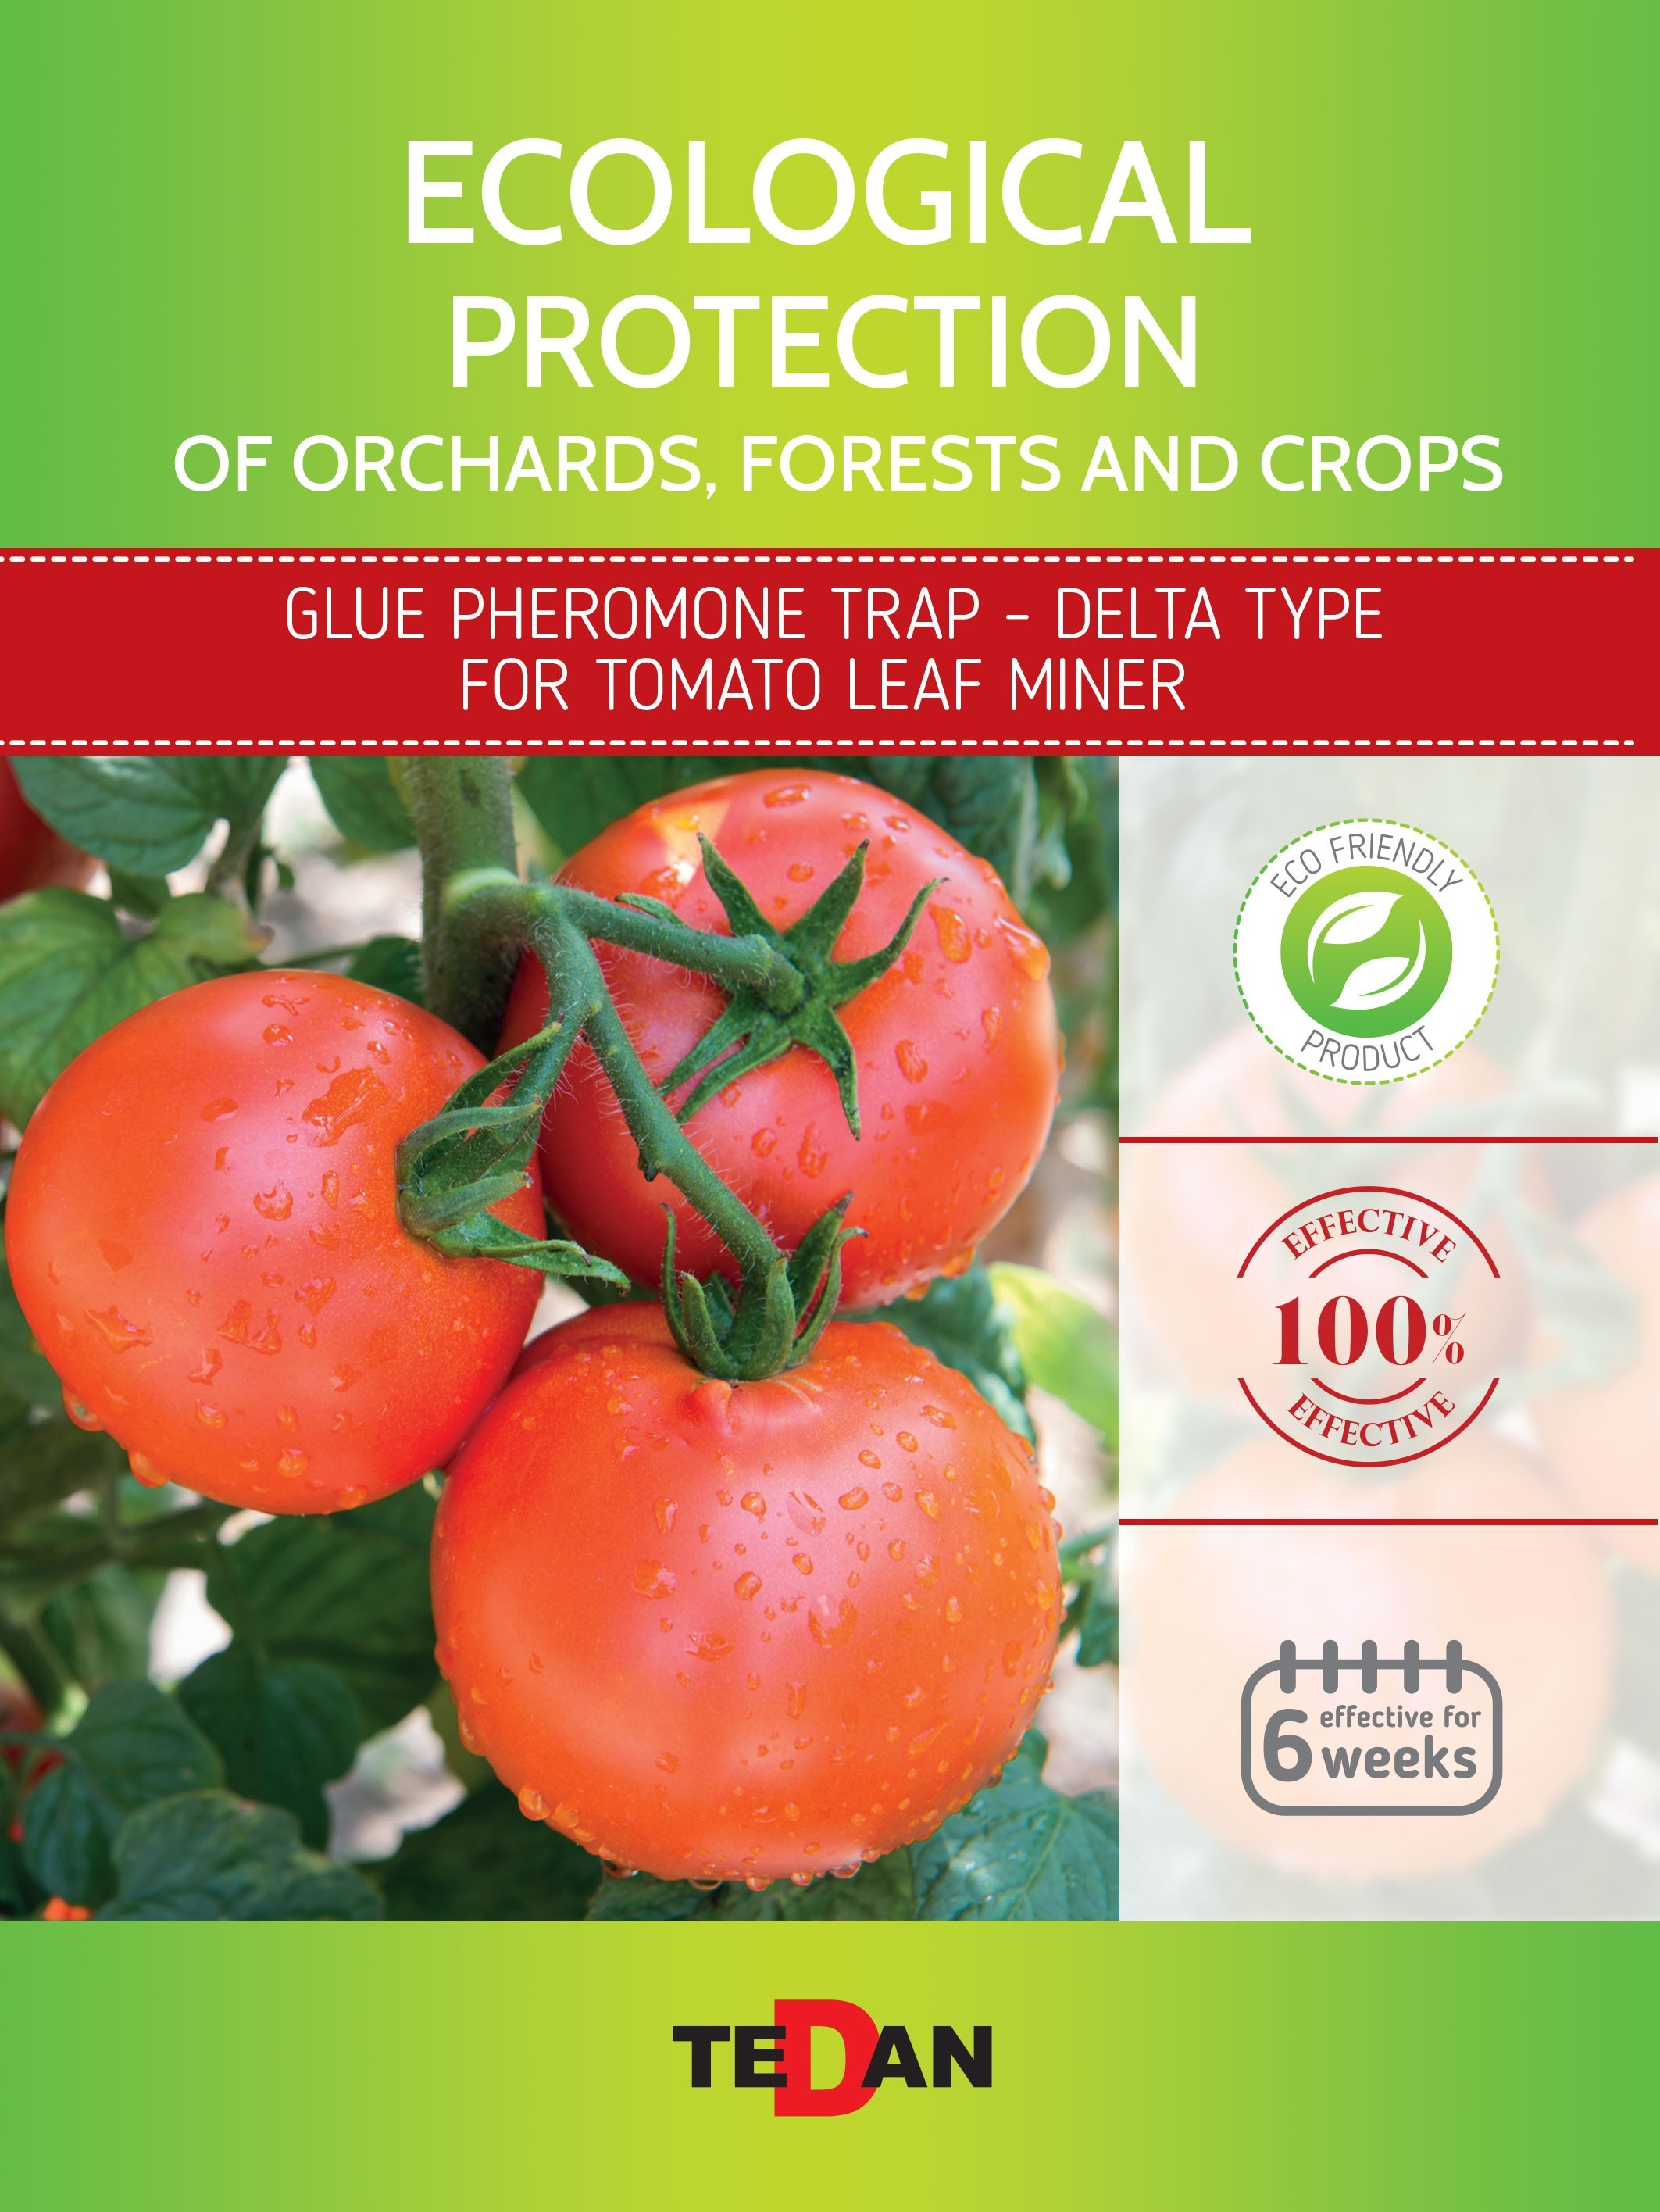 Glue pheromone trap - delta type for tomato leaf miner (tuta absoluta)